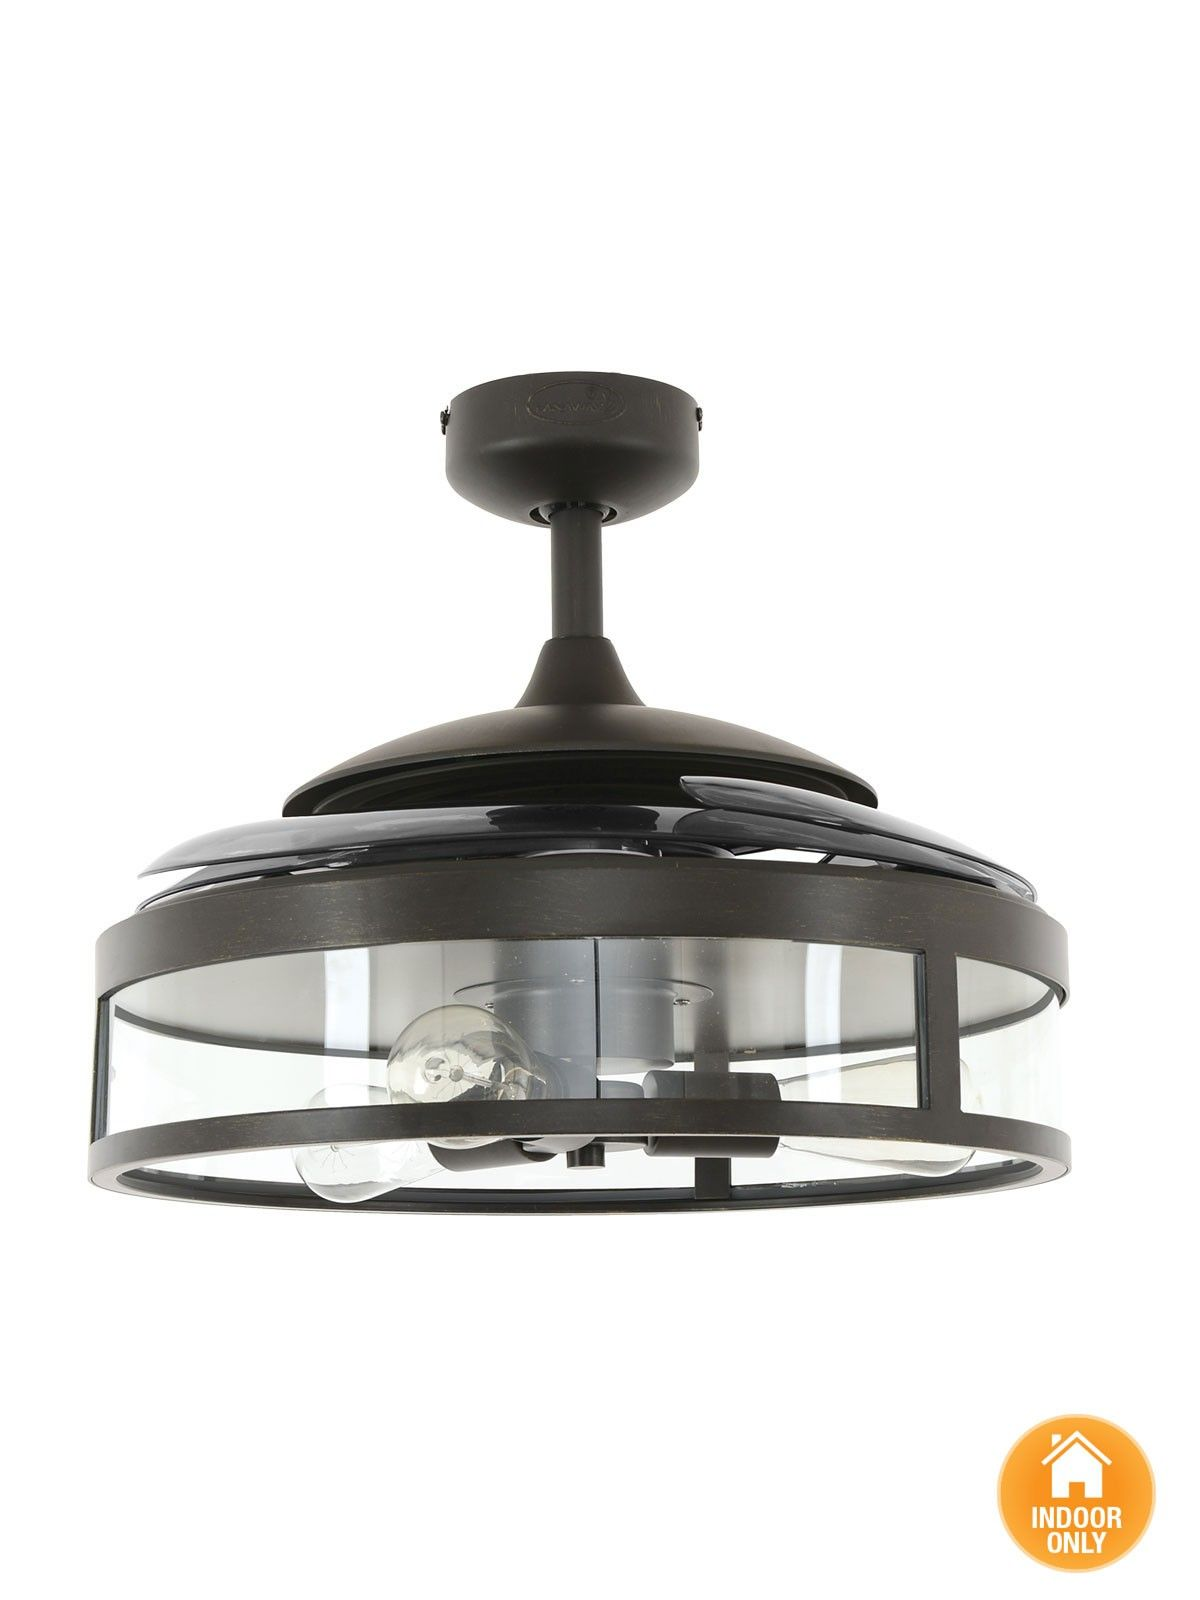 Fanaway Classic Ceiling Fan in black with Clear 4 Retractable